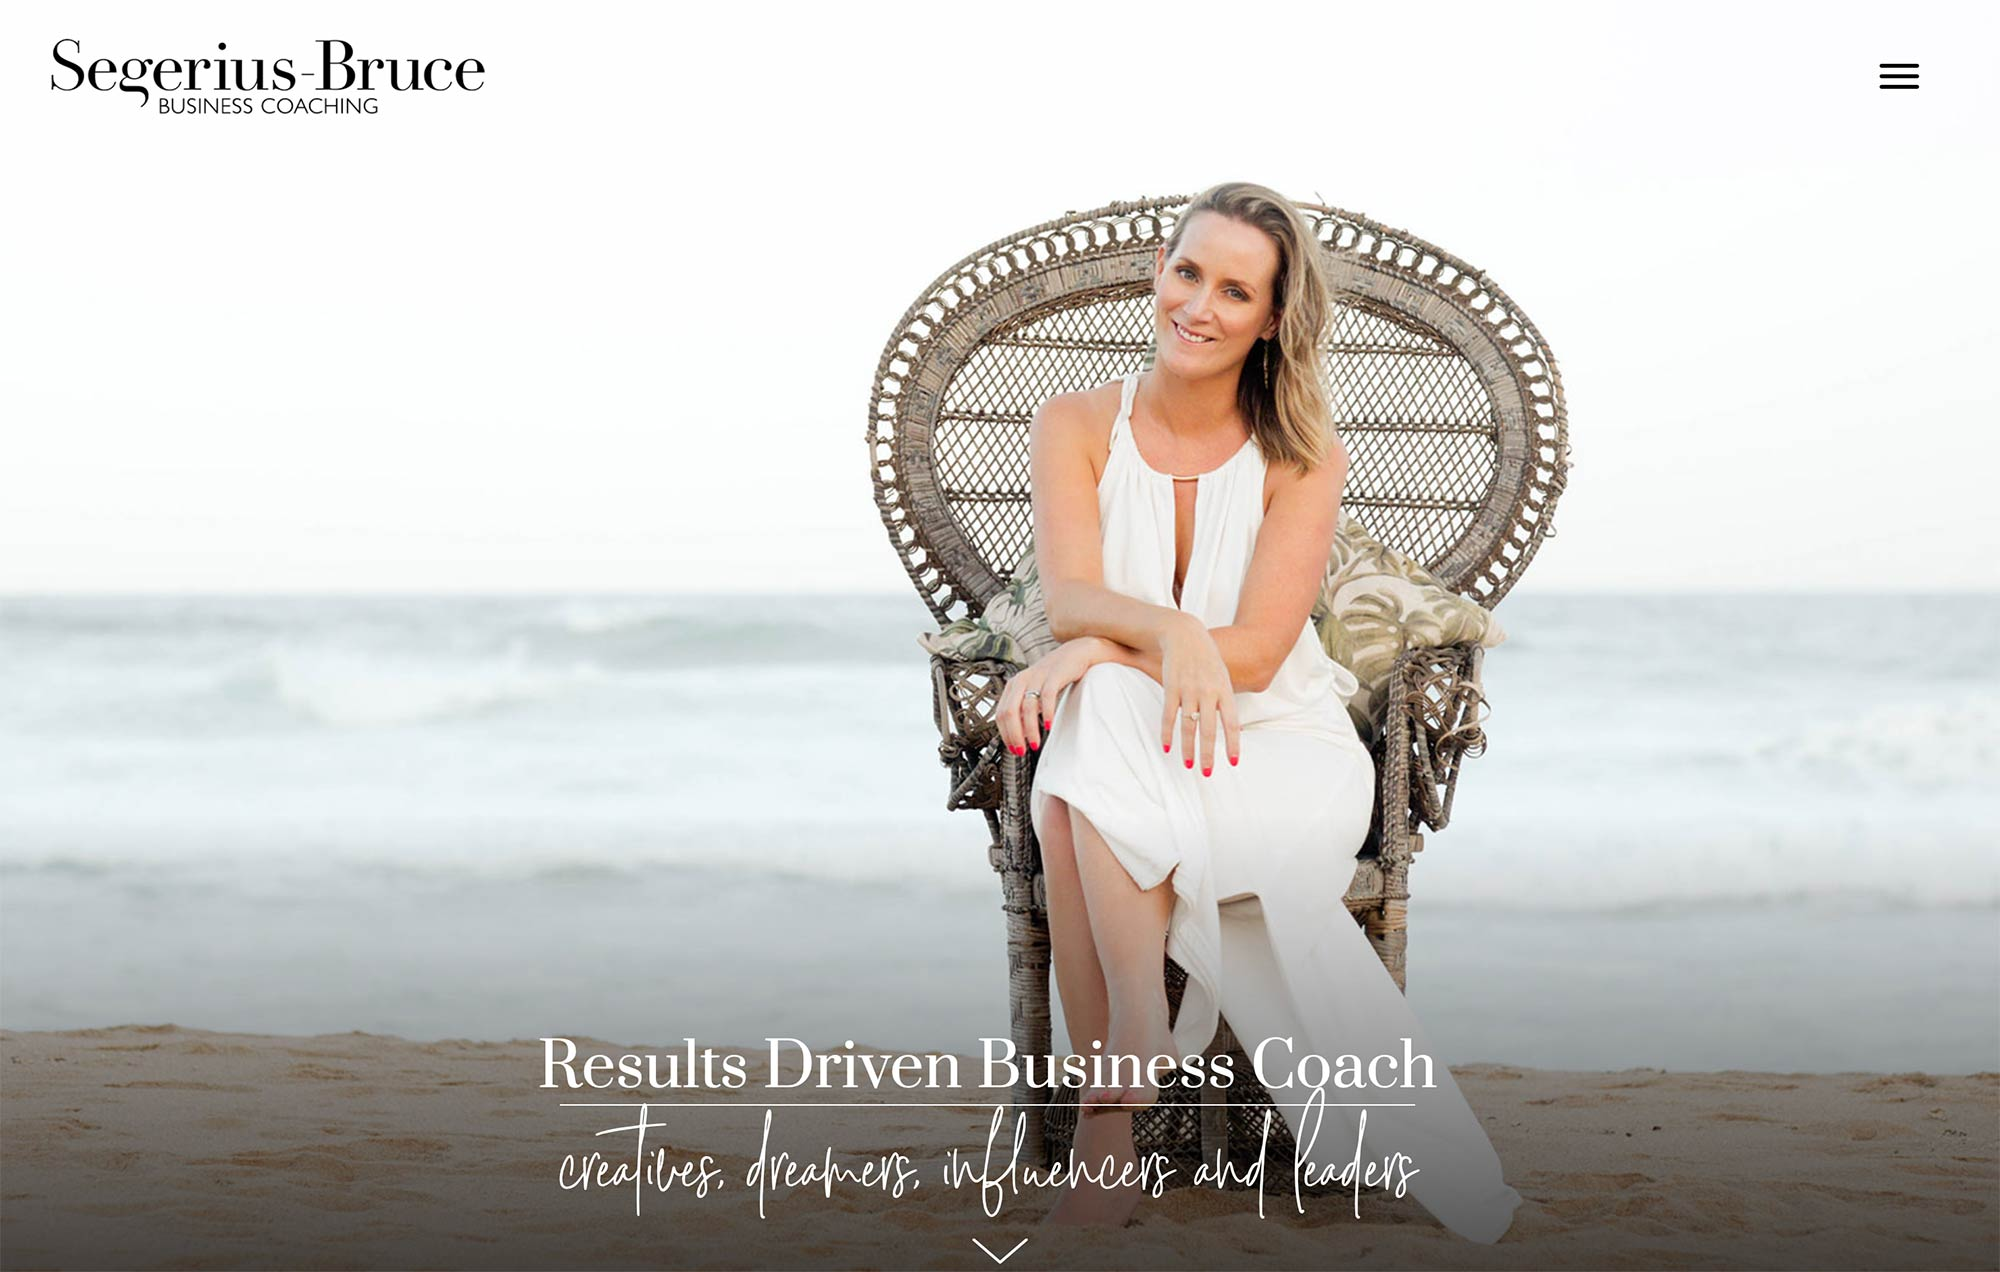 Segerius-Bruce business Coaching